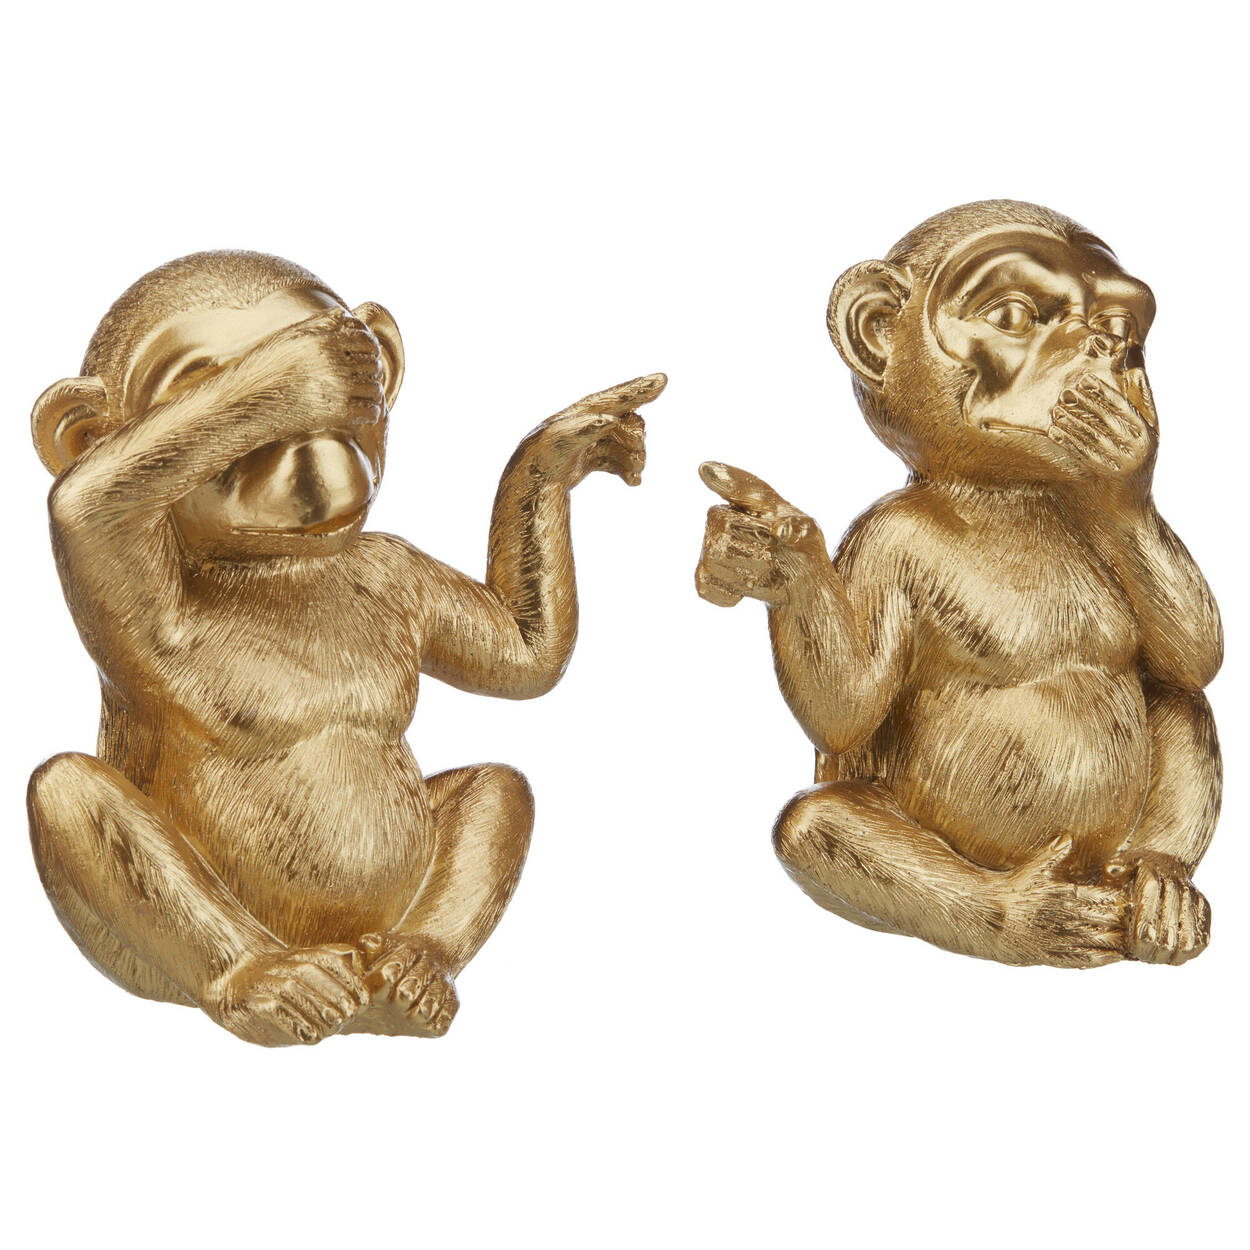 Wasn't Me Decorative Gold Monkey Set 14 cm.